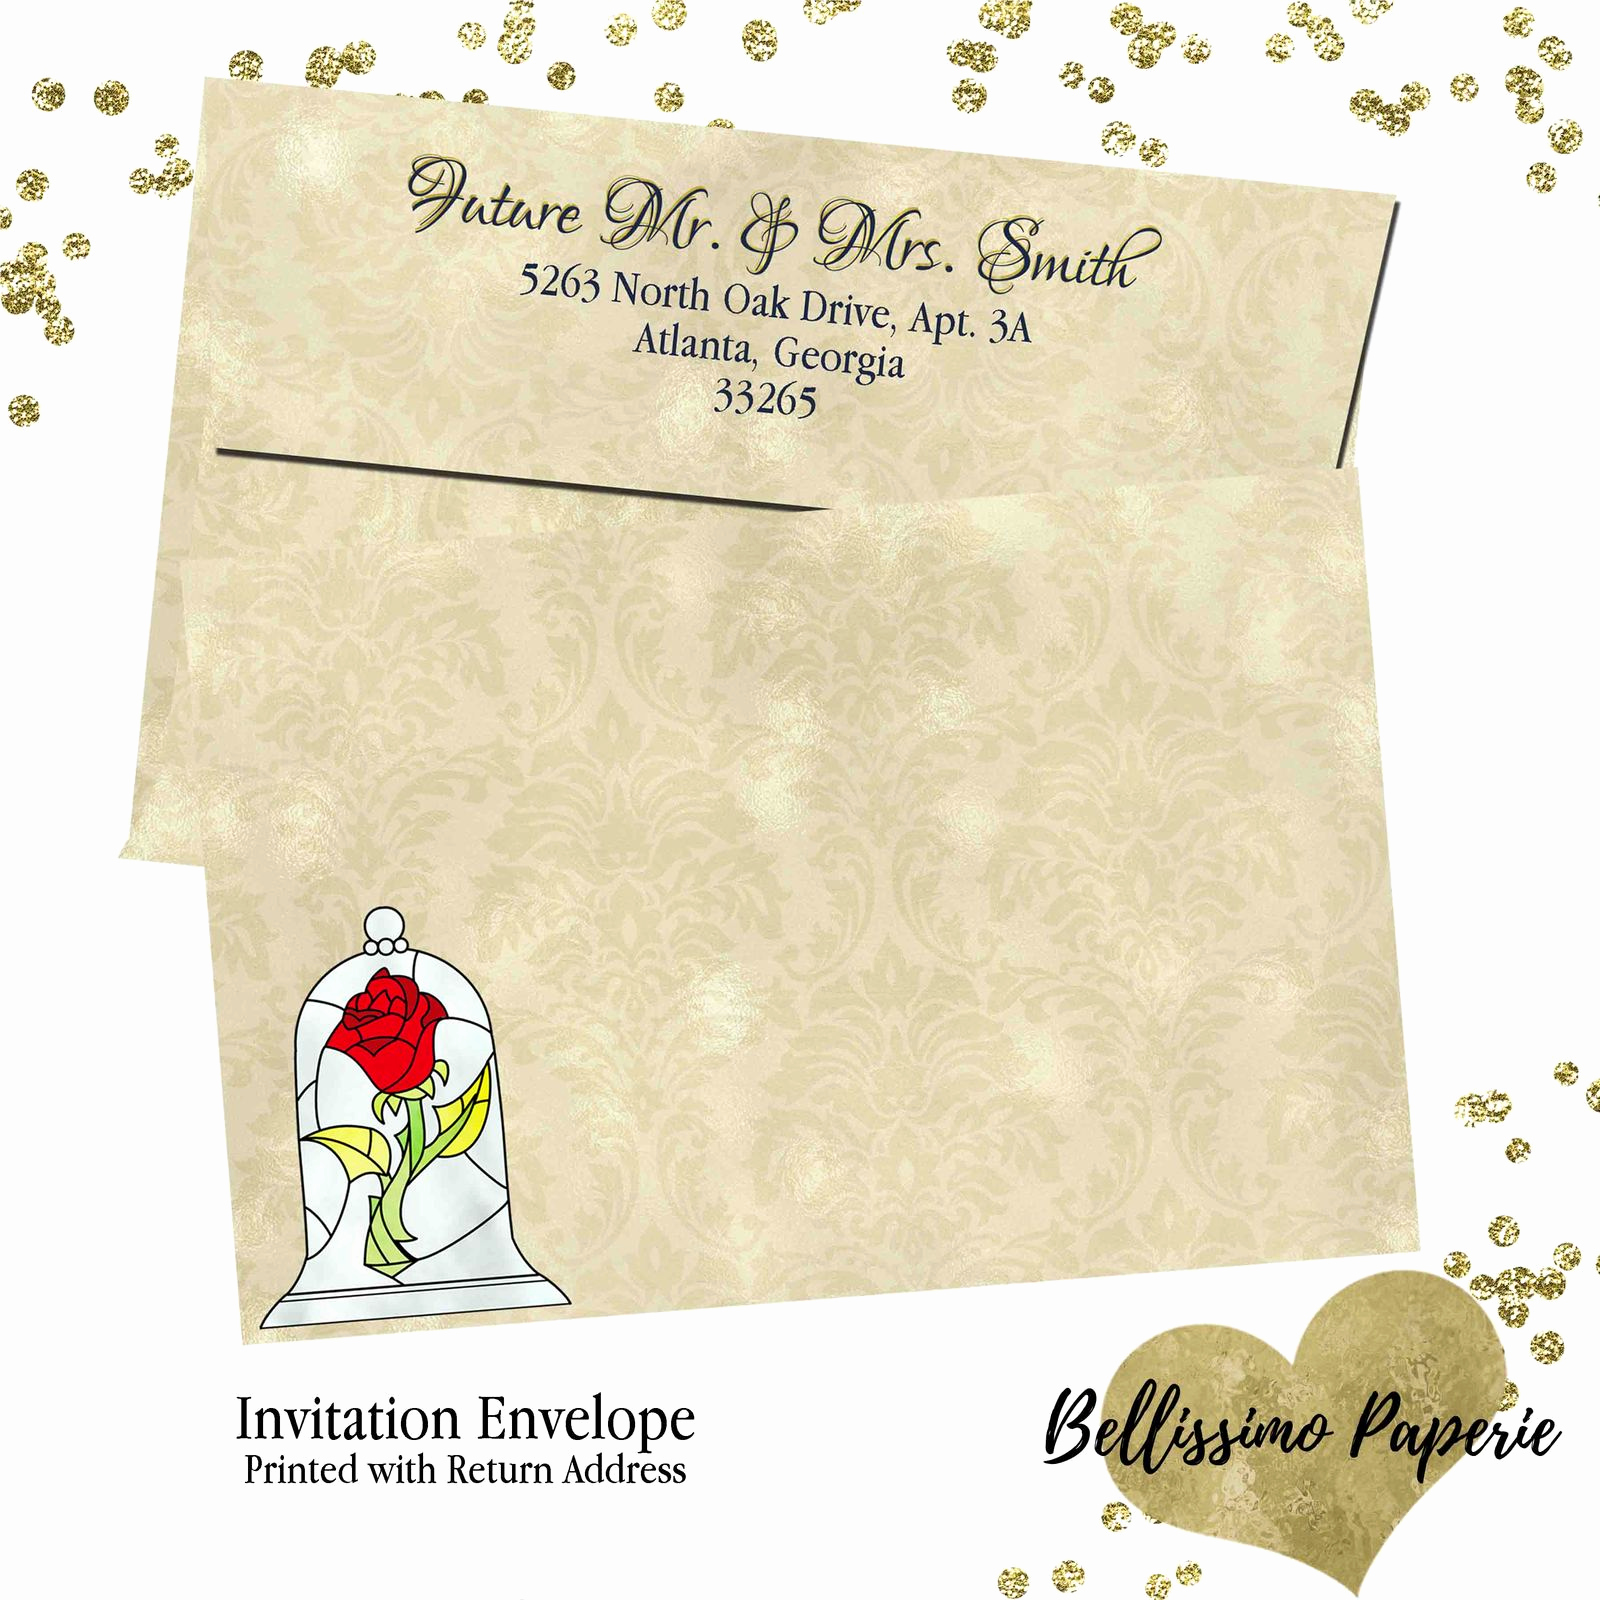 Beauty and the Beast Invitation Awesome Beauty and the Beast Wedding Invitation Set Rsvp